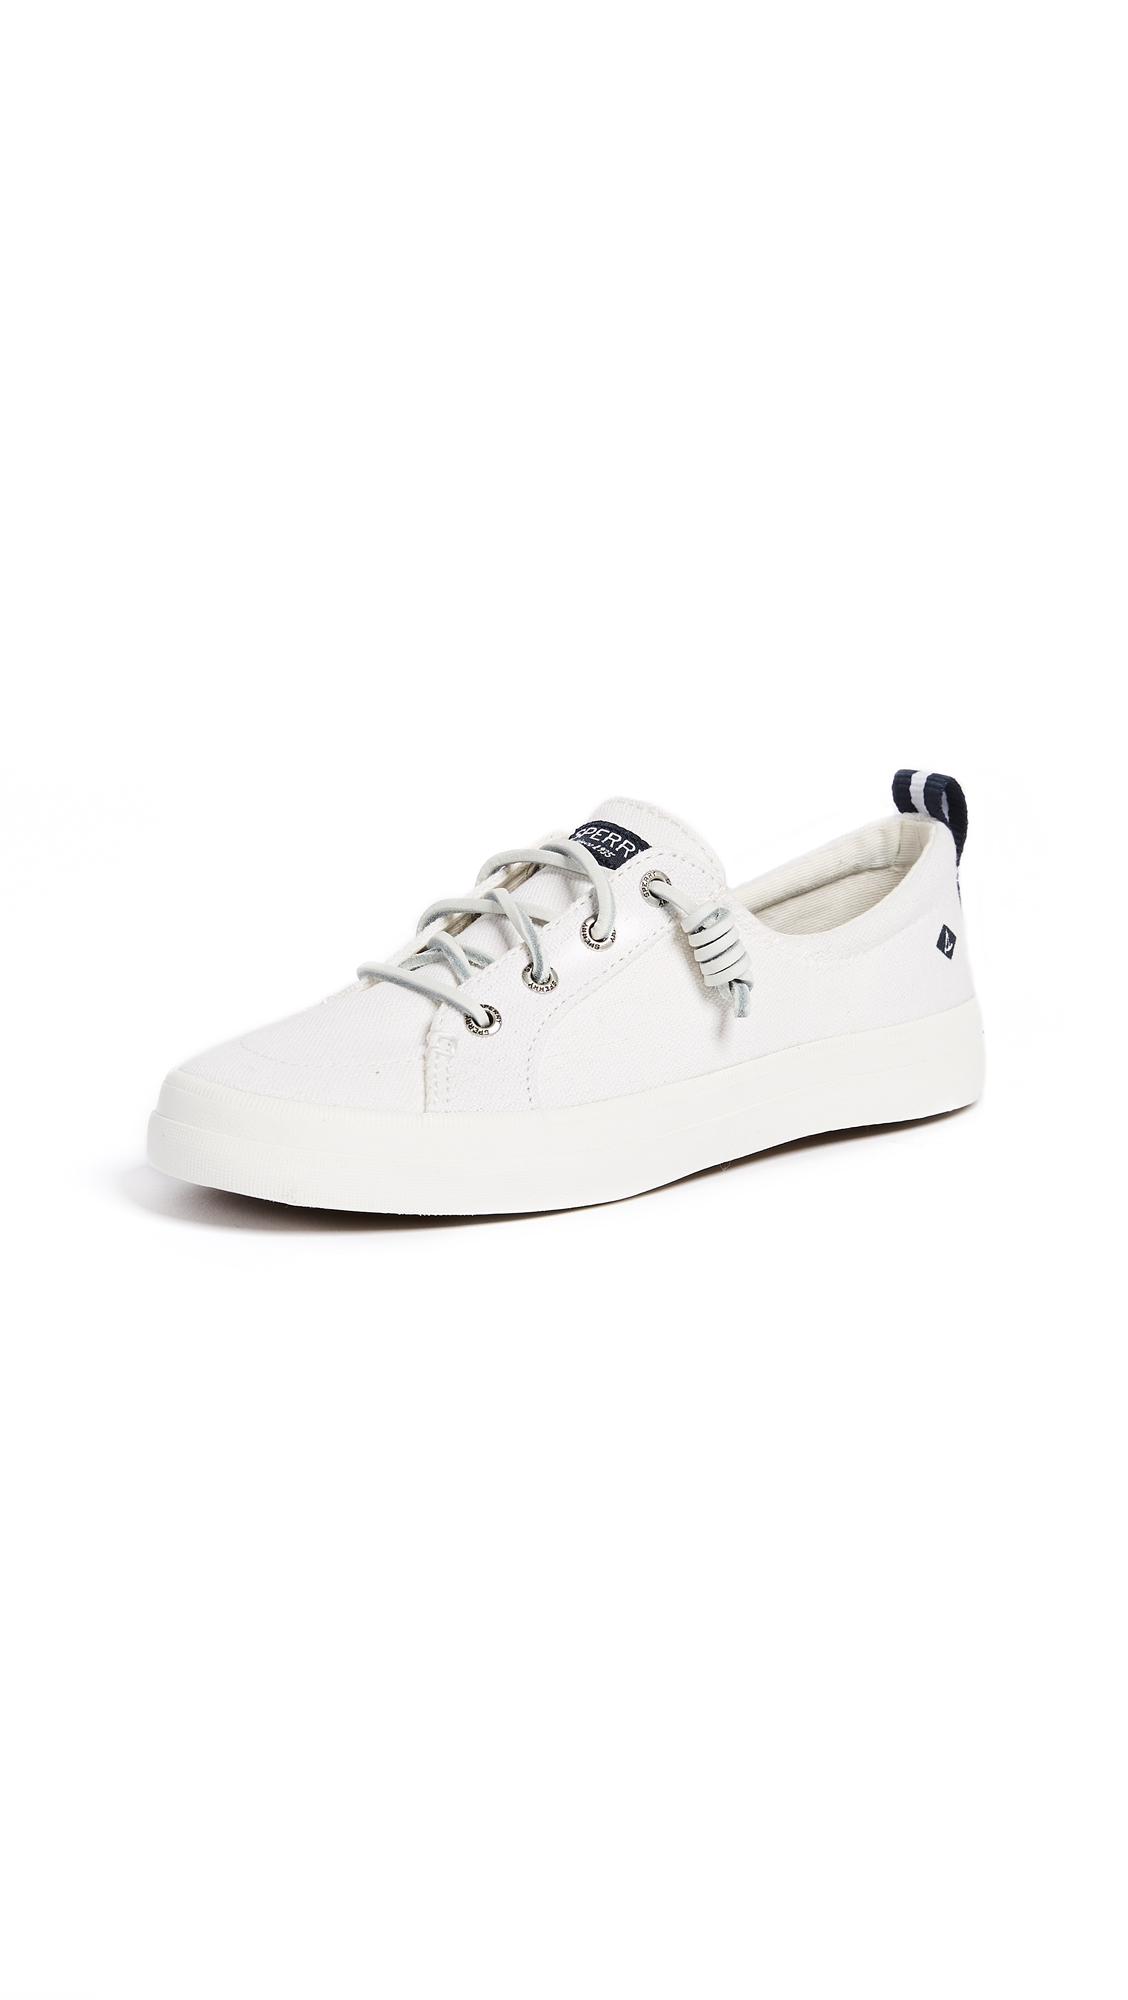 Sperry Crest Vibe Linen Sneakers - White